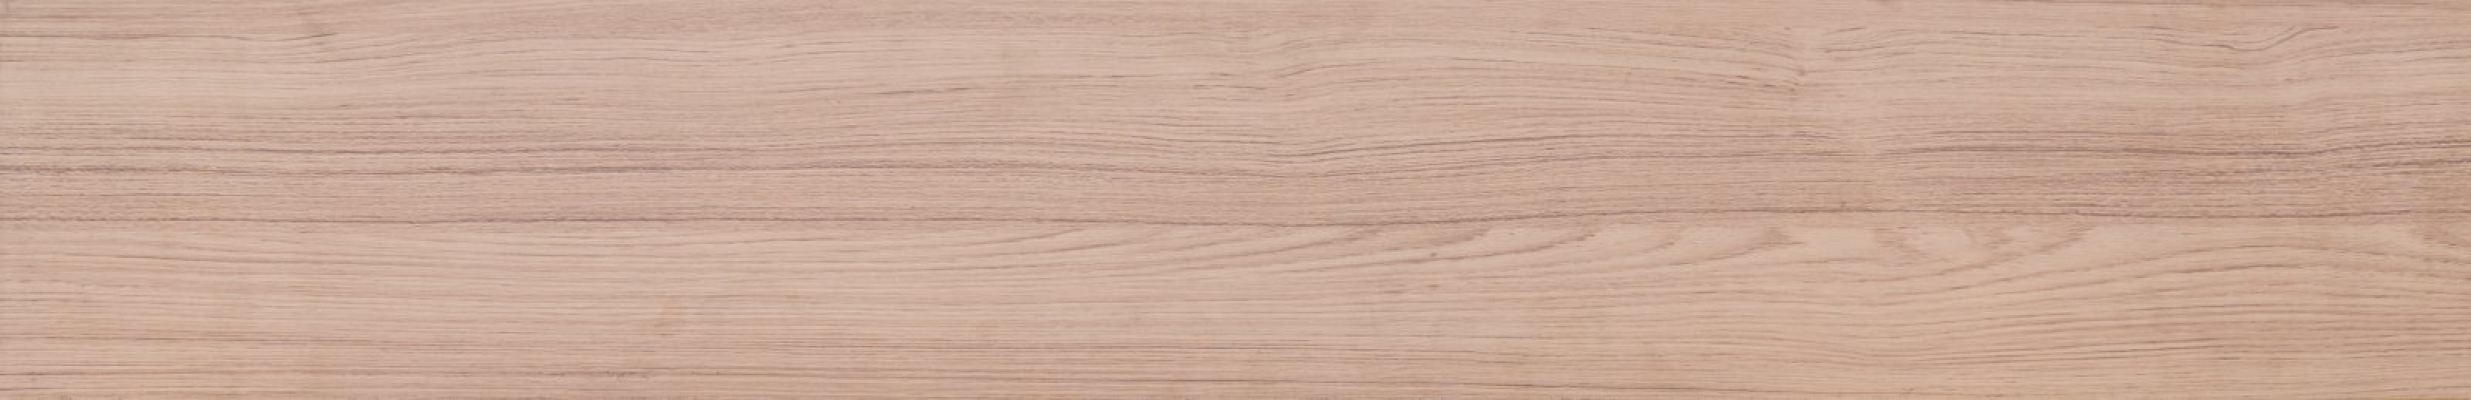 TW 10732 (TEAK ALLOVER) - 8mm